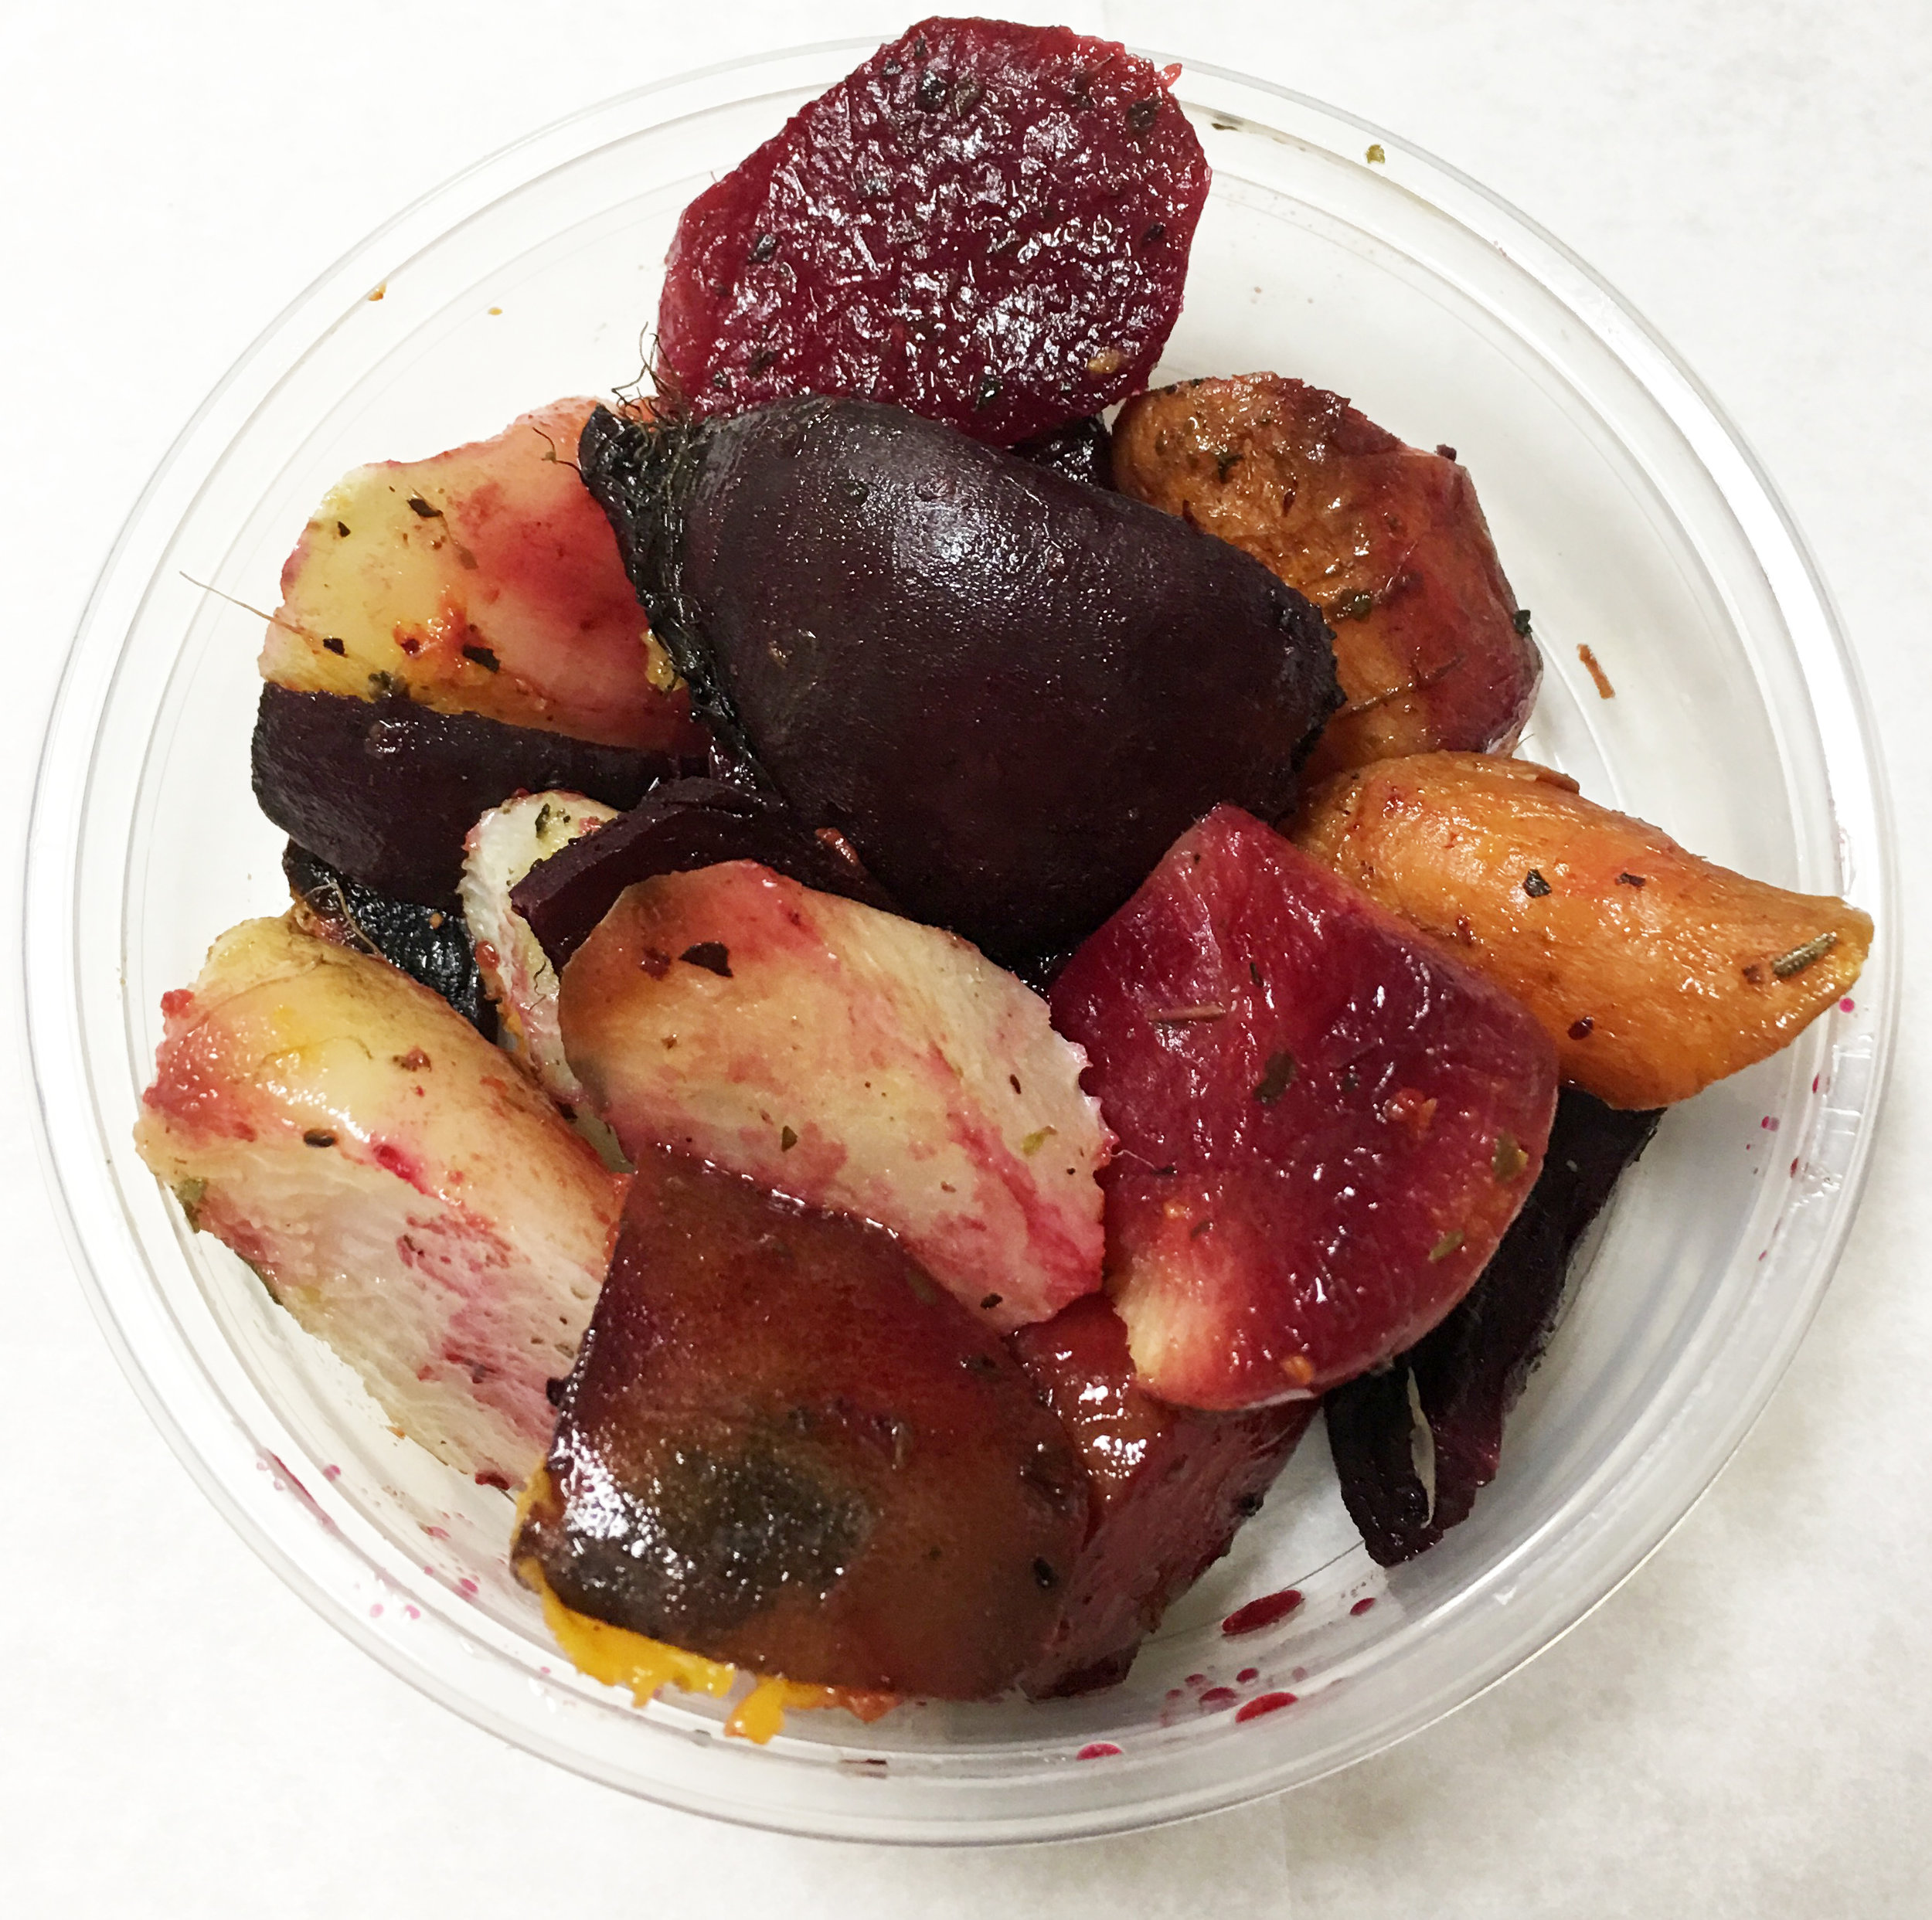 Roasted color heirloom carrots, beets and daikon with Italian seasoning.